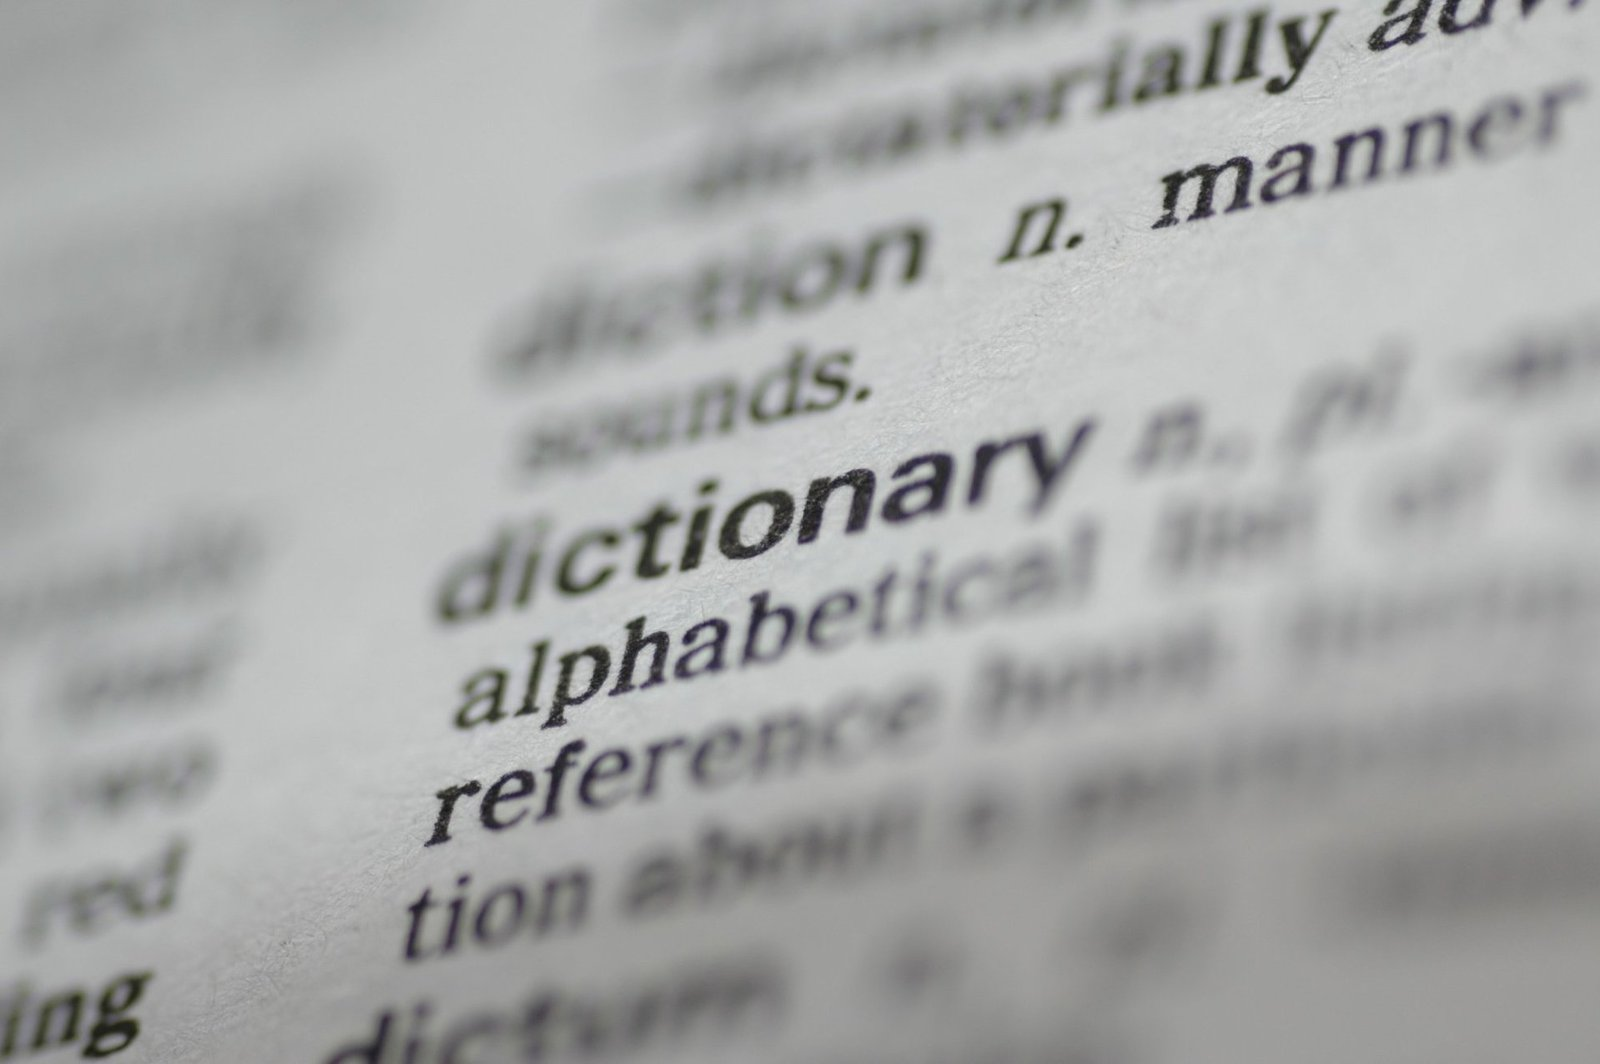 """Dictionary entry for the word """"dictionary""""."""